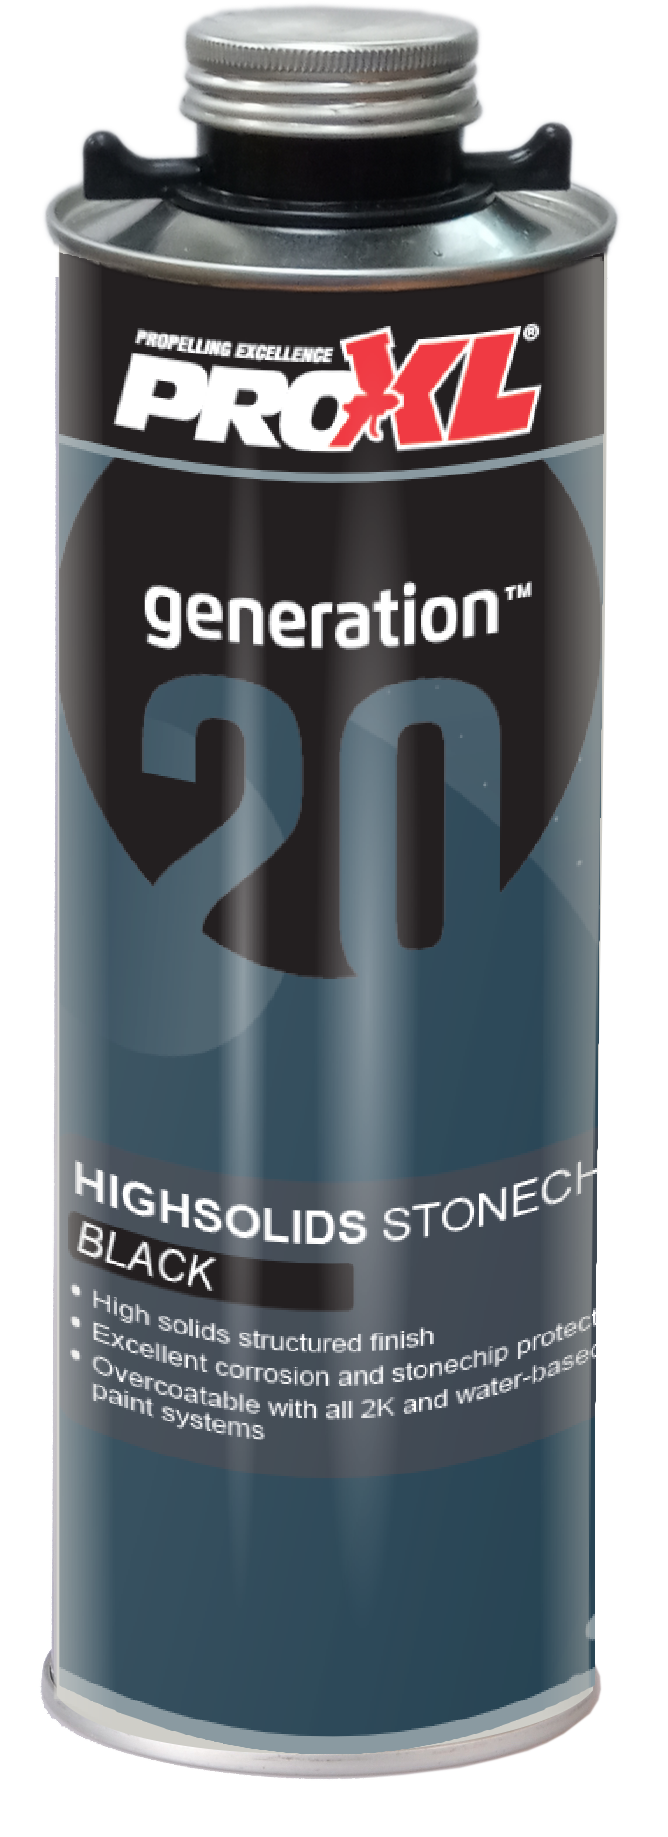 StoneChip High Solids Black (1lt) Product Image